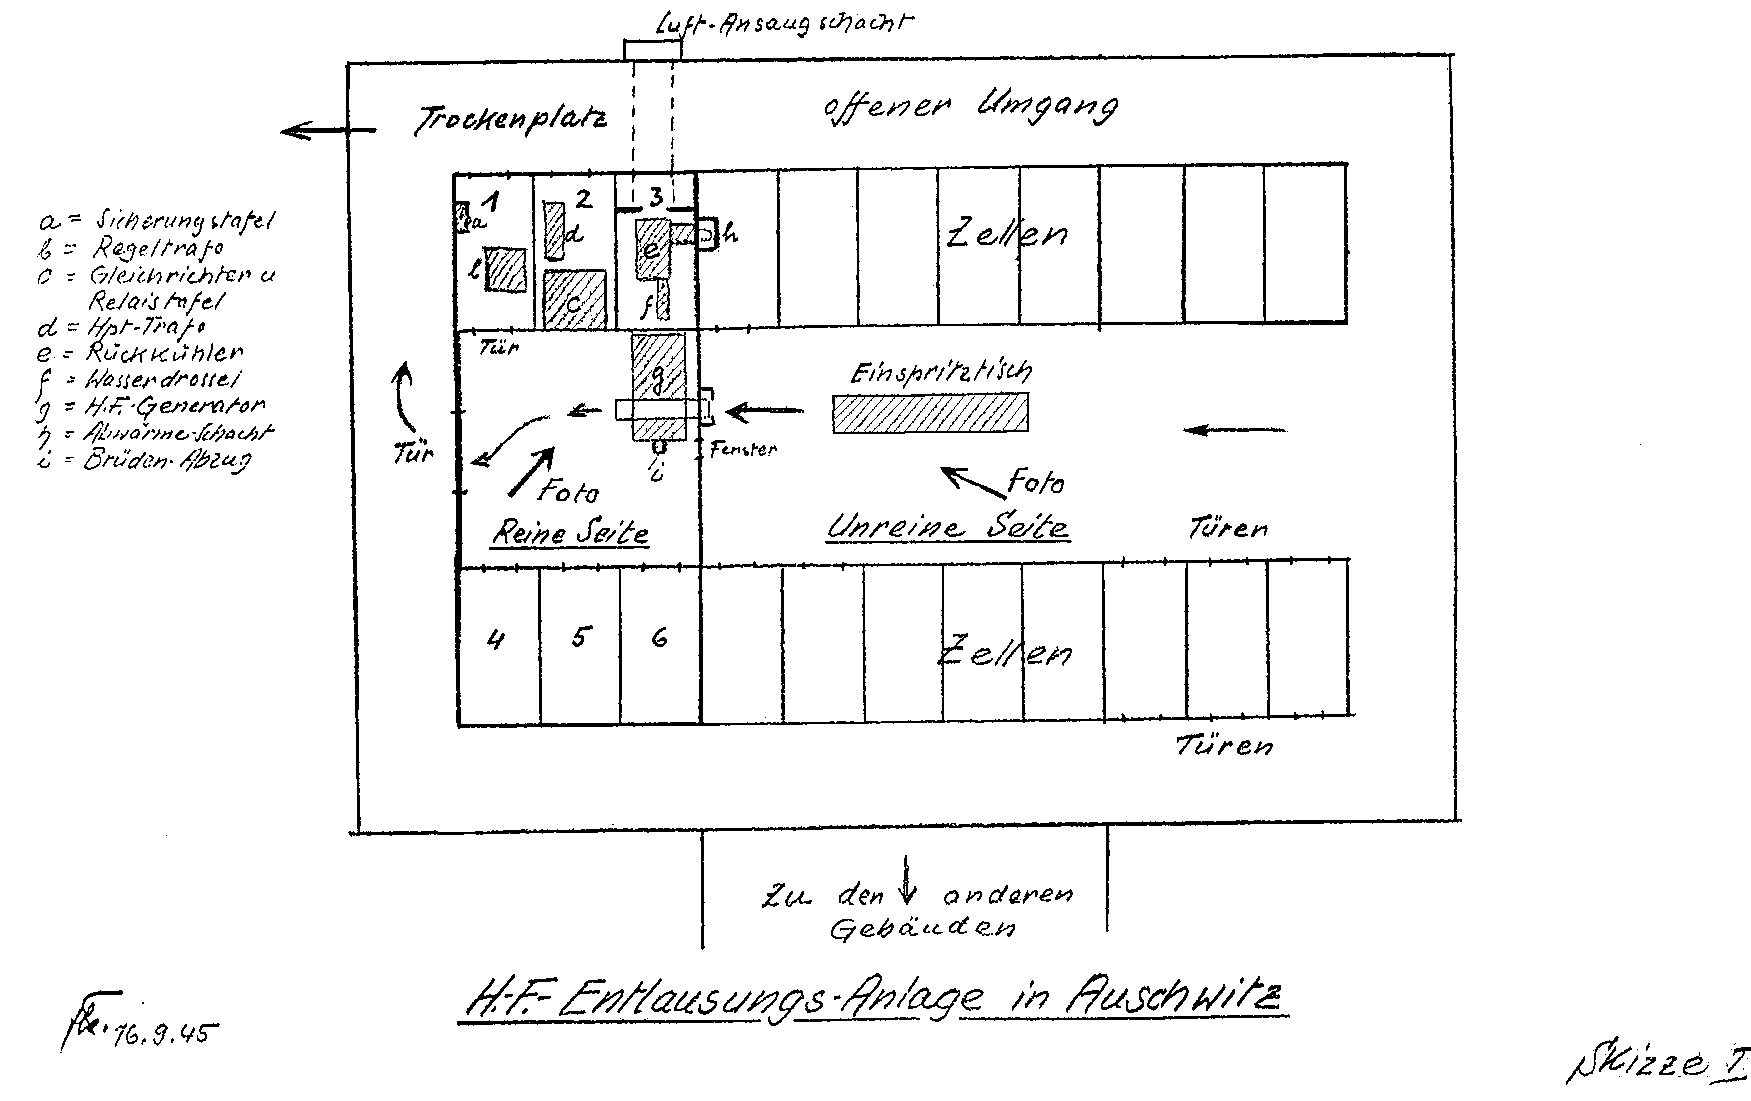 com high frequency delousing facilities at auschwitz postwar diagram of microwave delousing facility at auschwitz